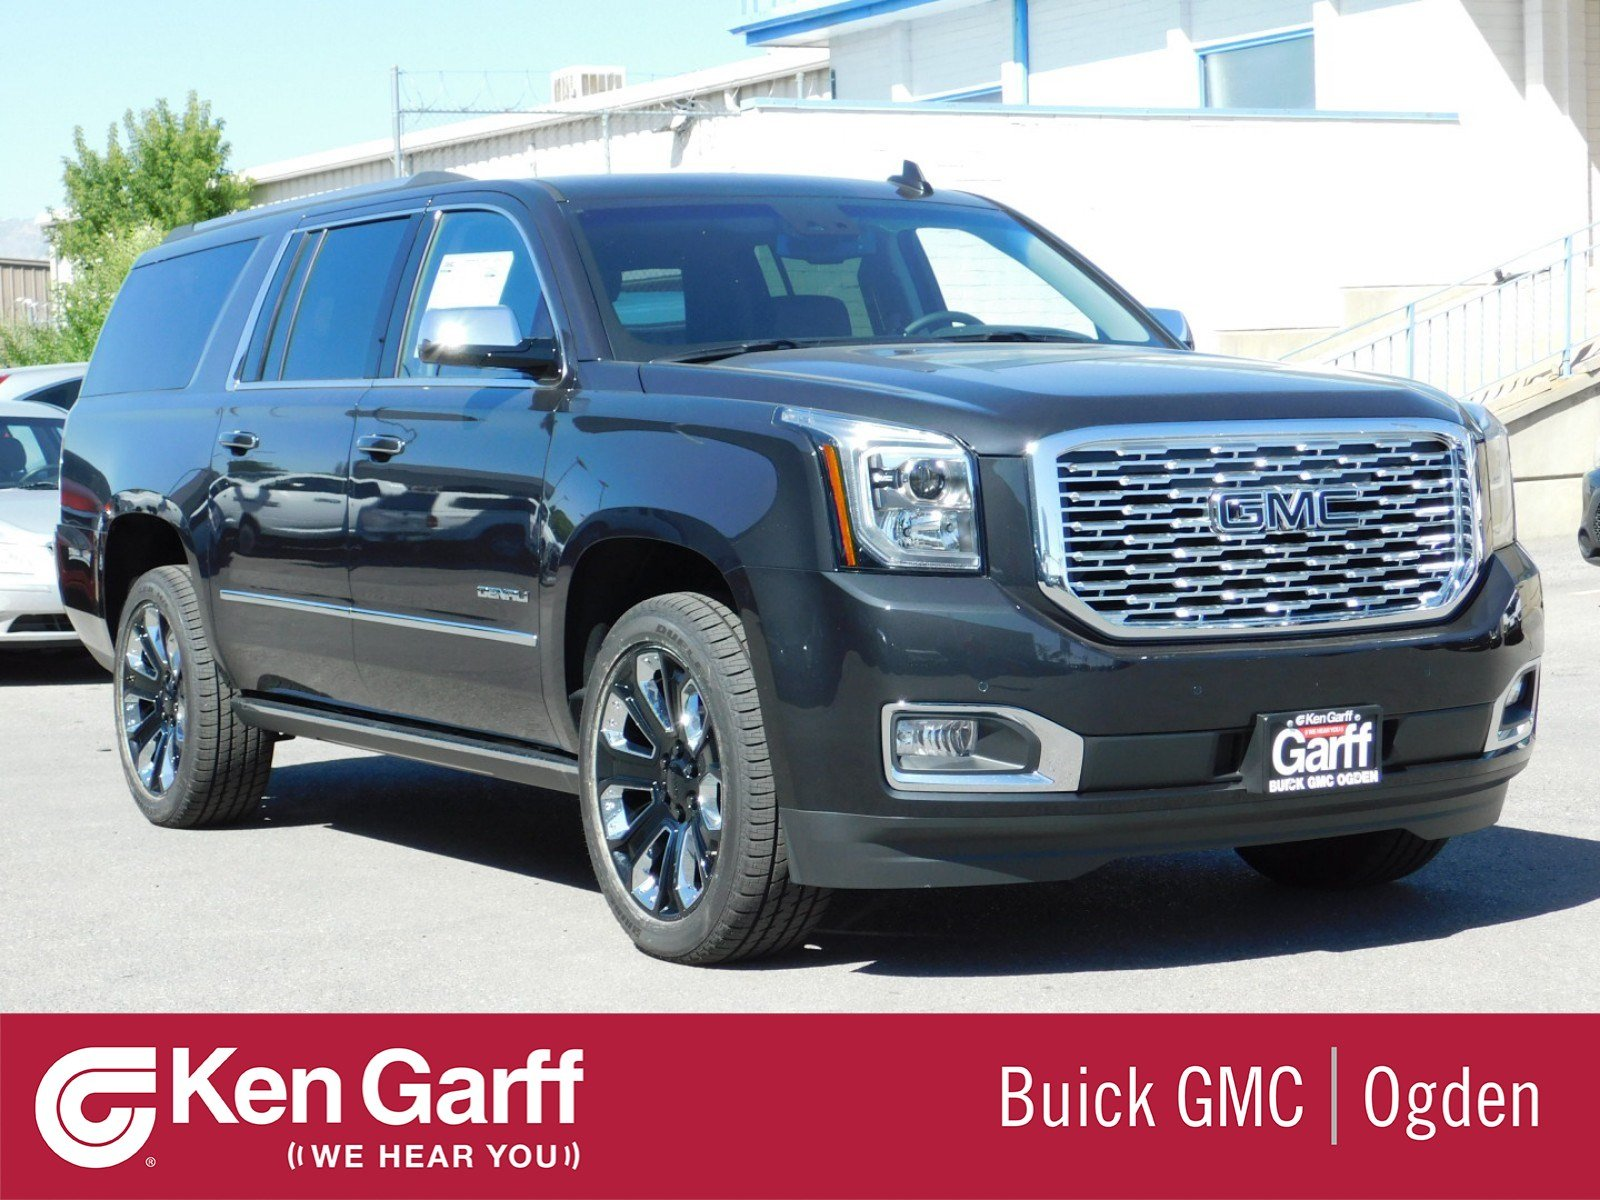 Terrific New Gmc Yukon Xl Denali With Navigation 4Wd Spiritservingveterans Wood Chair Design Ideas Spiritservingveteransorg